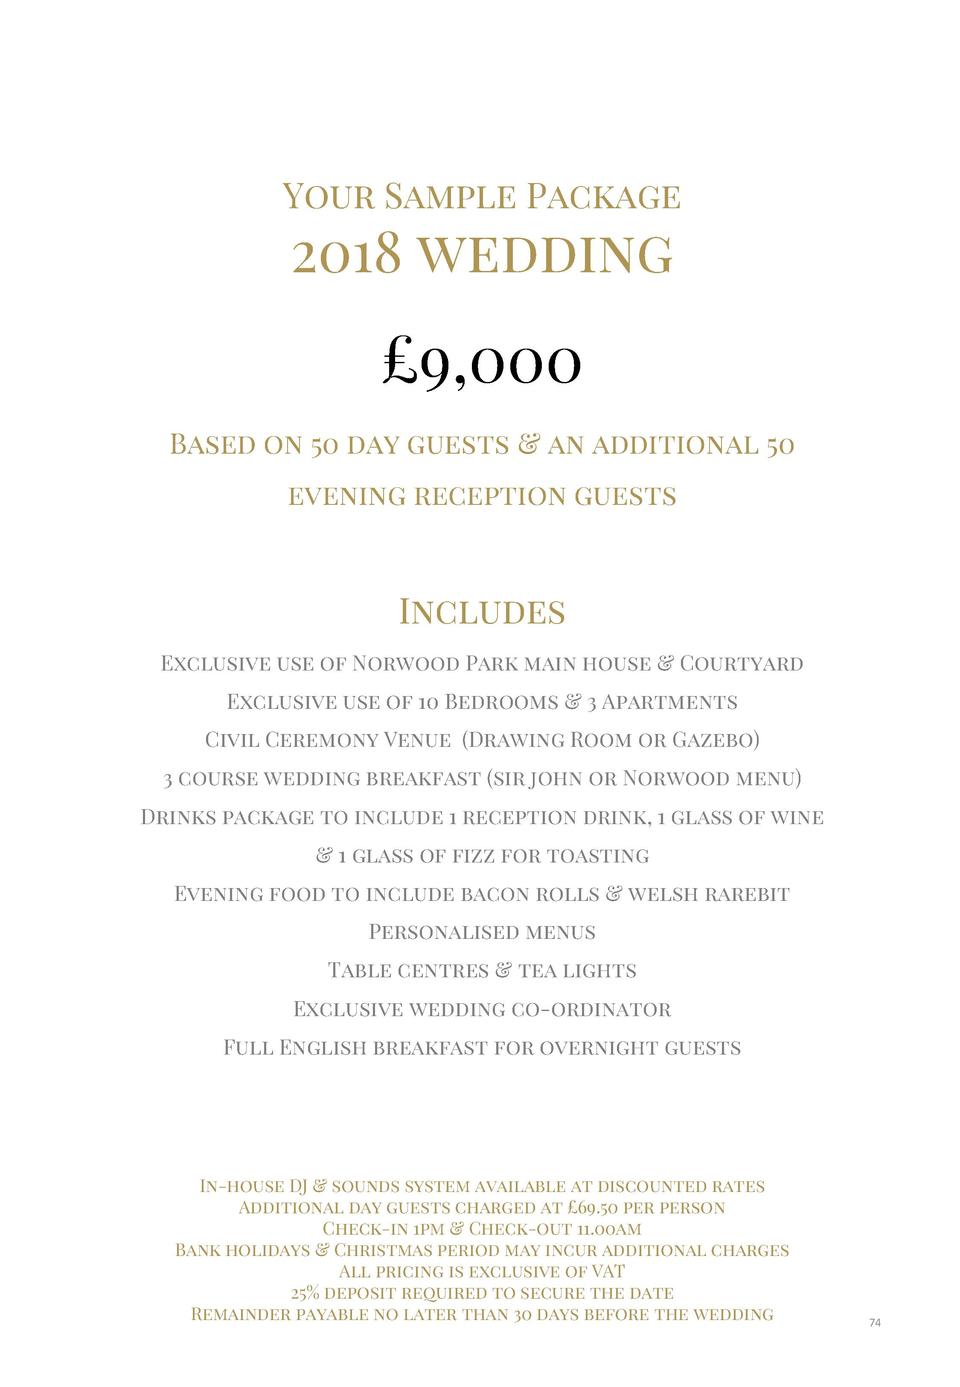 Your Sample Package  2018 wedding    9,000 Based on 50 day guests   an additional 50 evening reception guests  Includes Ex...